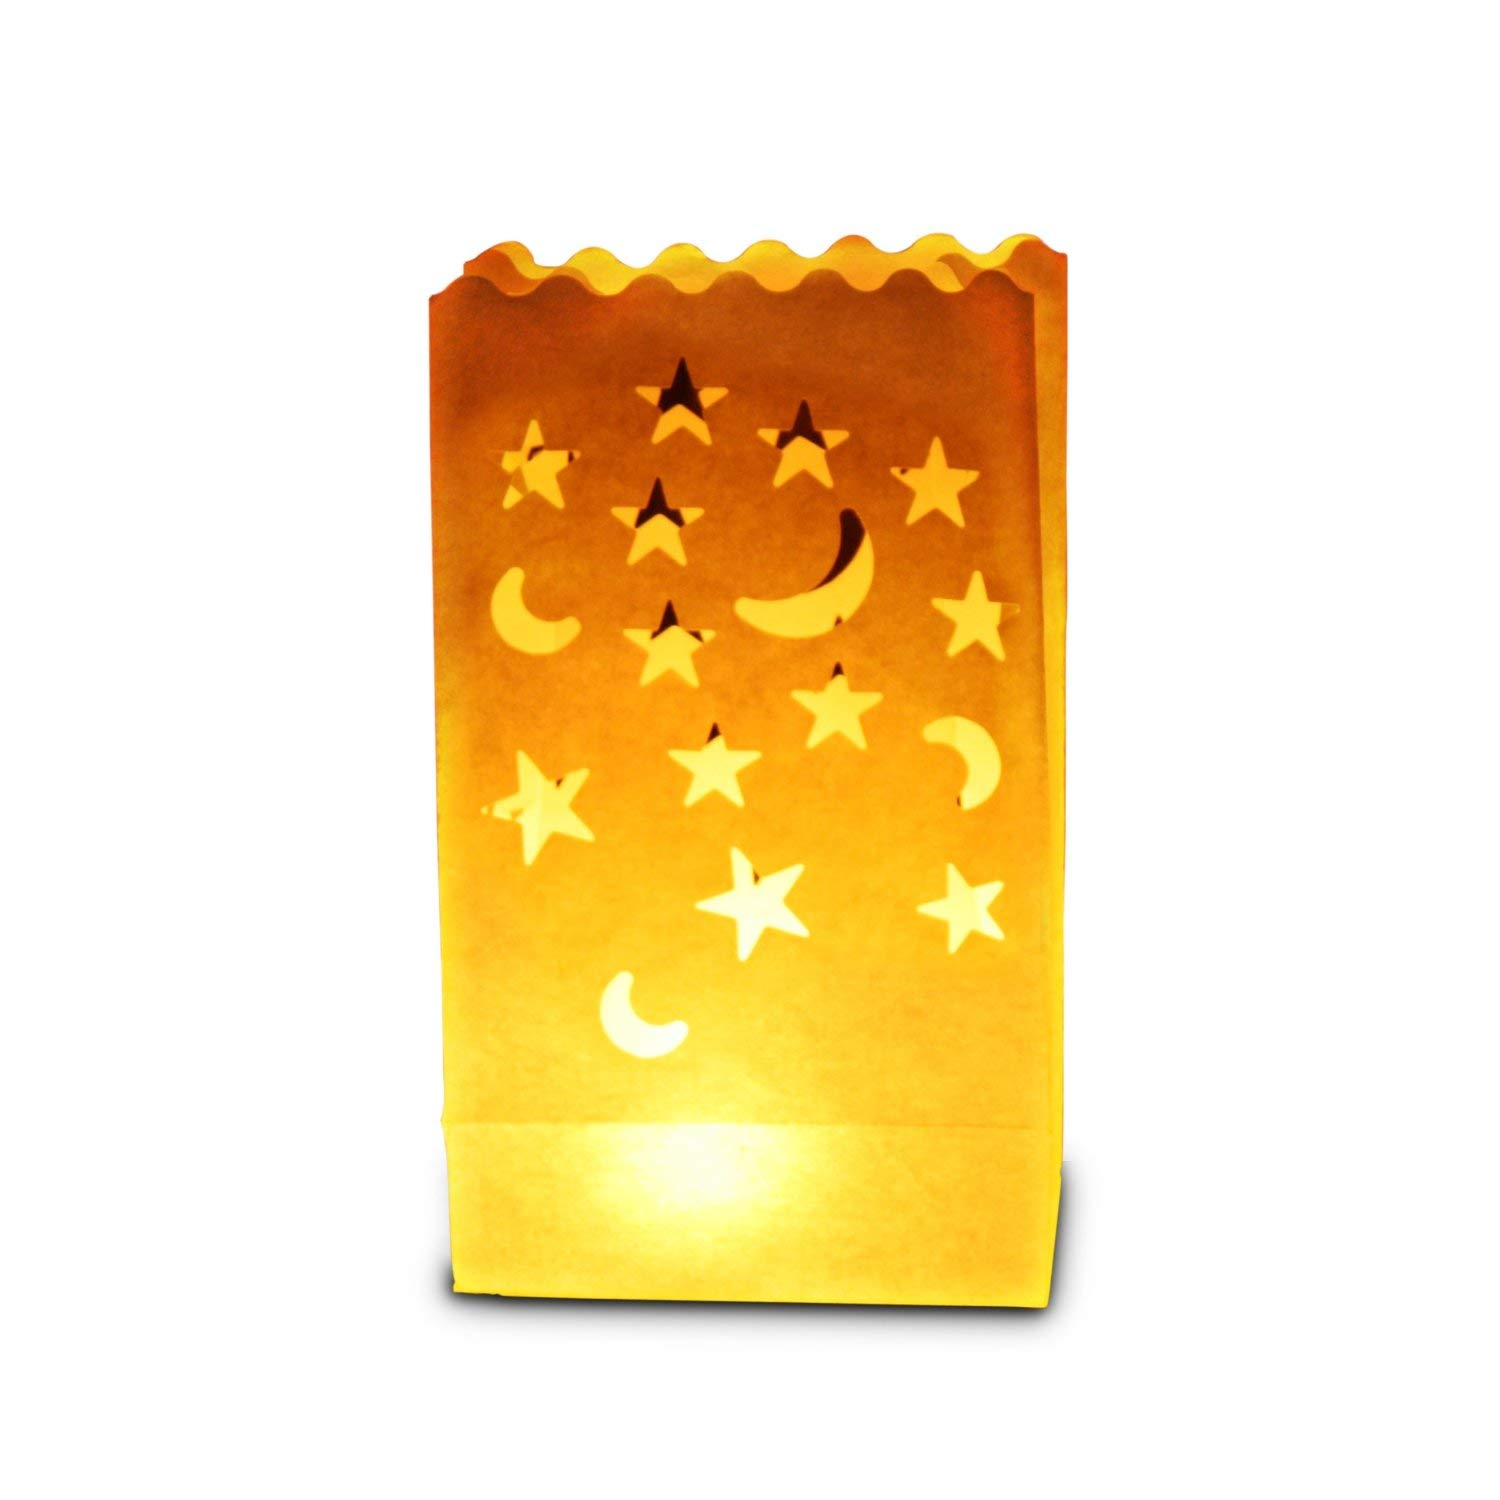 Candle Bags - Candle Luminary Bags (Pack of 30) - Moon and Stars Design Sky Lanterns Ltd.